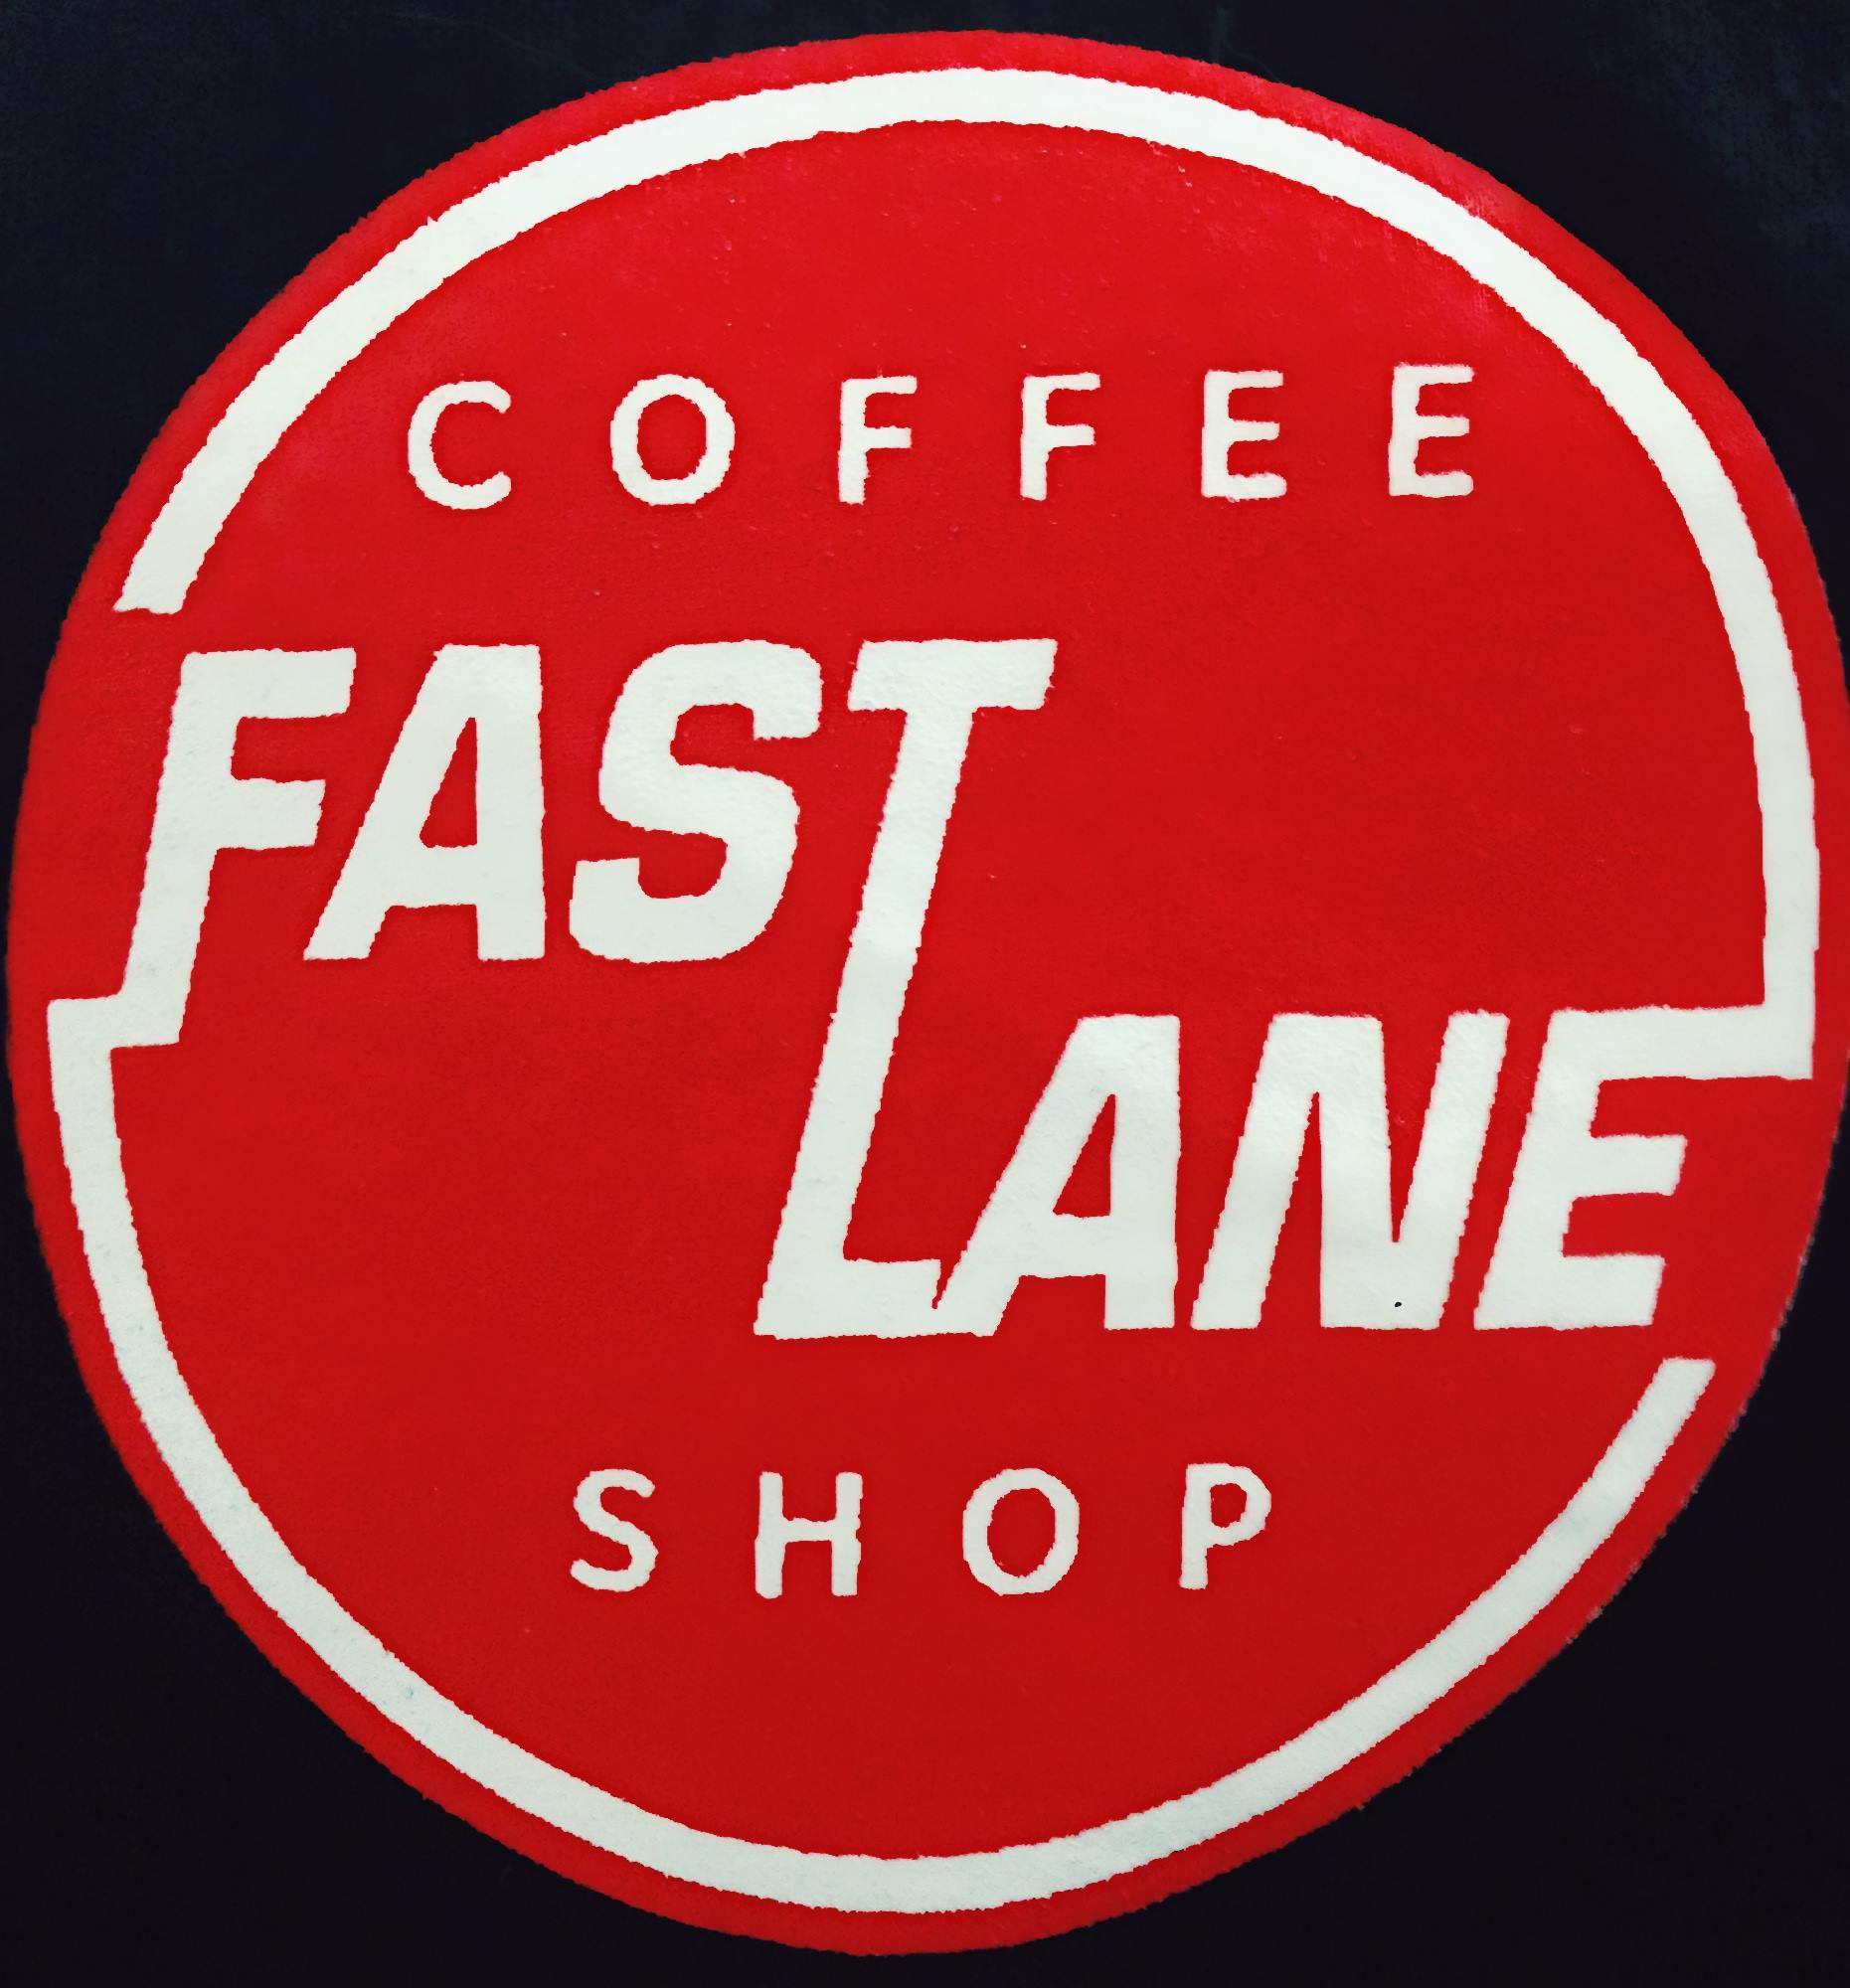 Fast Lane Coffee